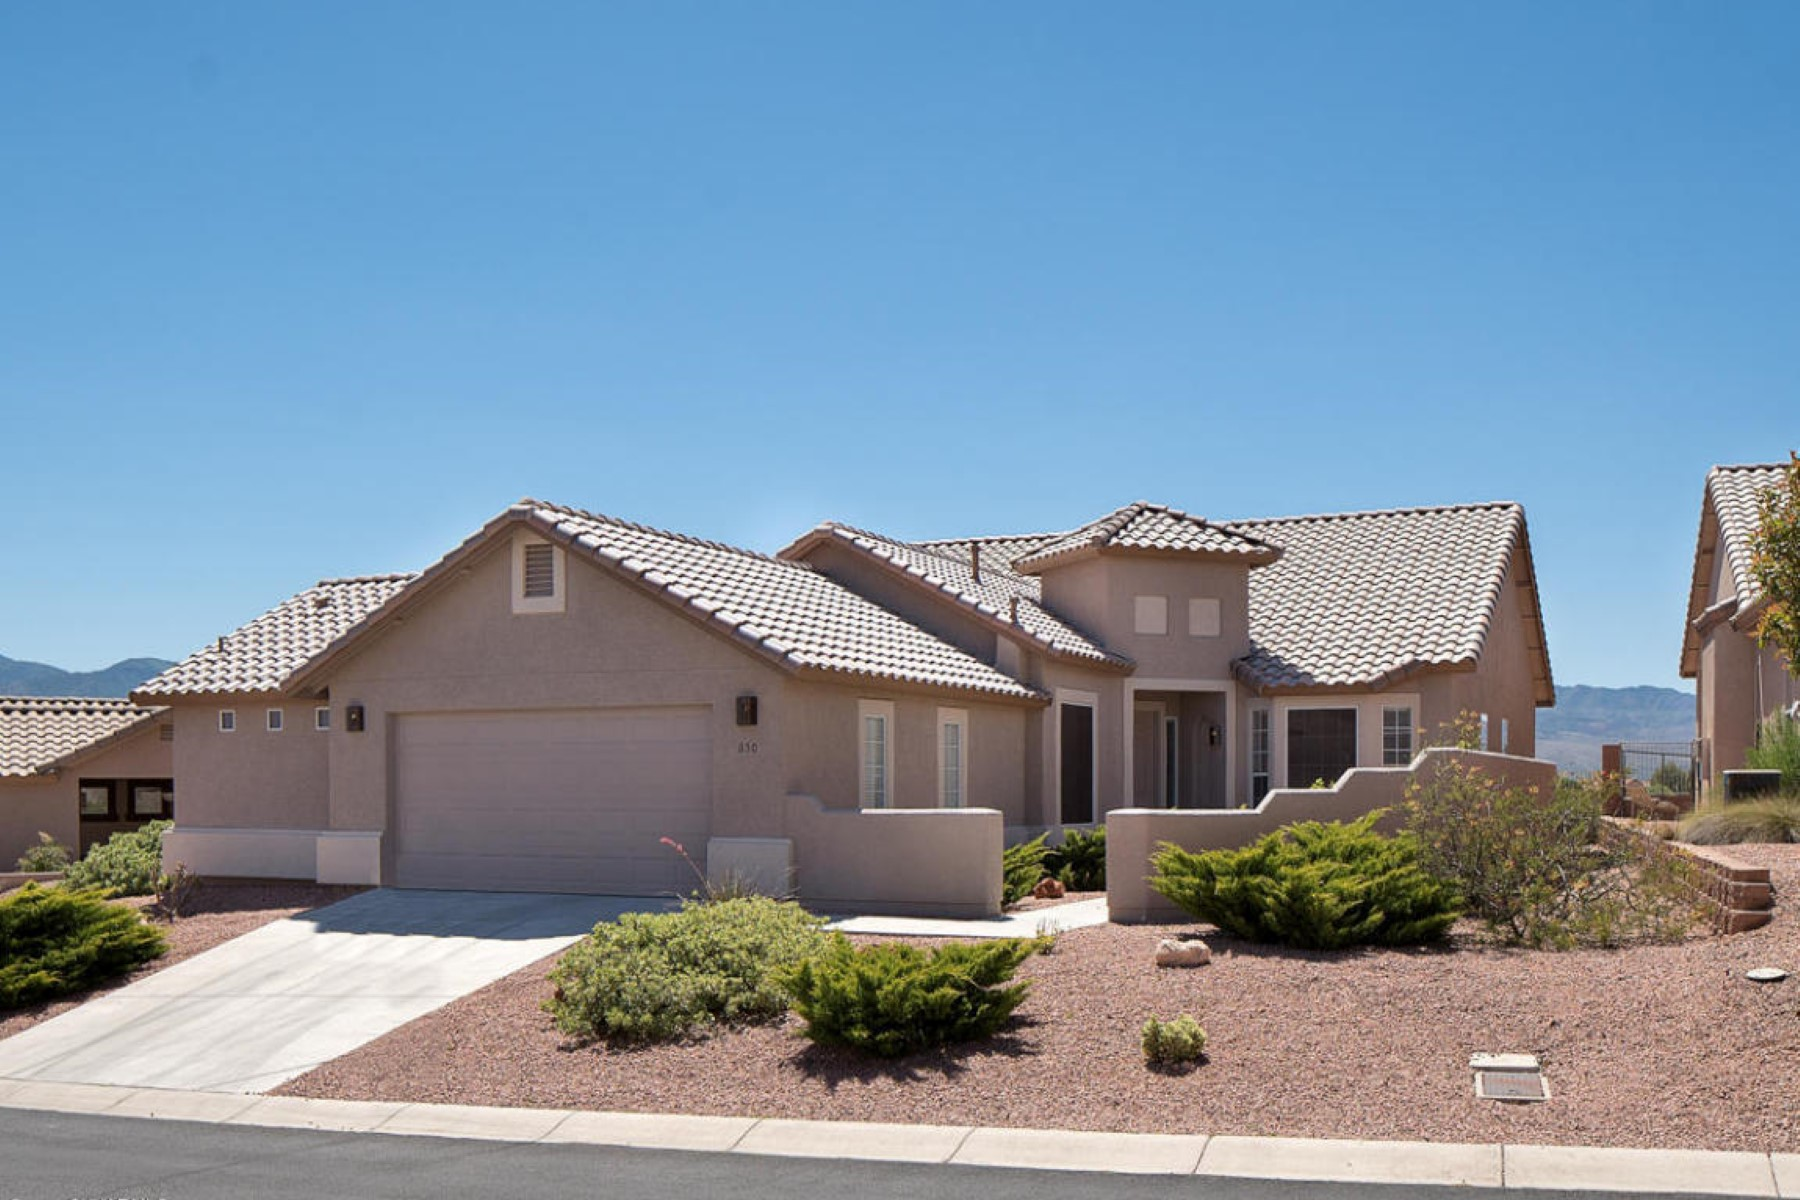 Single Family Home for Sale at Stunning Golf Course home in quiet gated community. 850 S Golf View Drive Cornville, Arizona 86325 United States